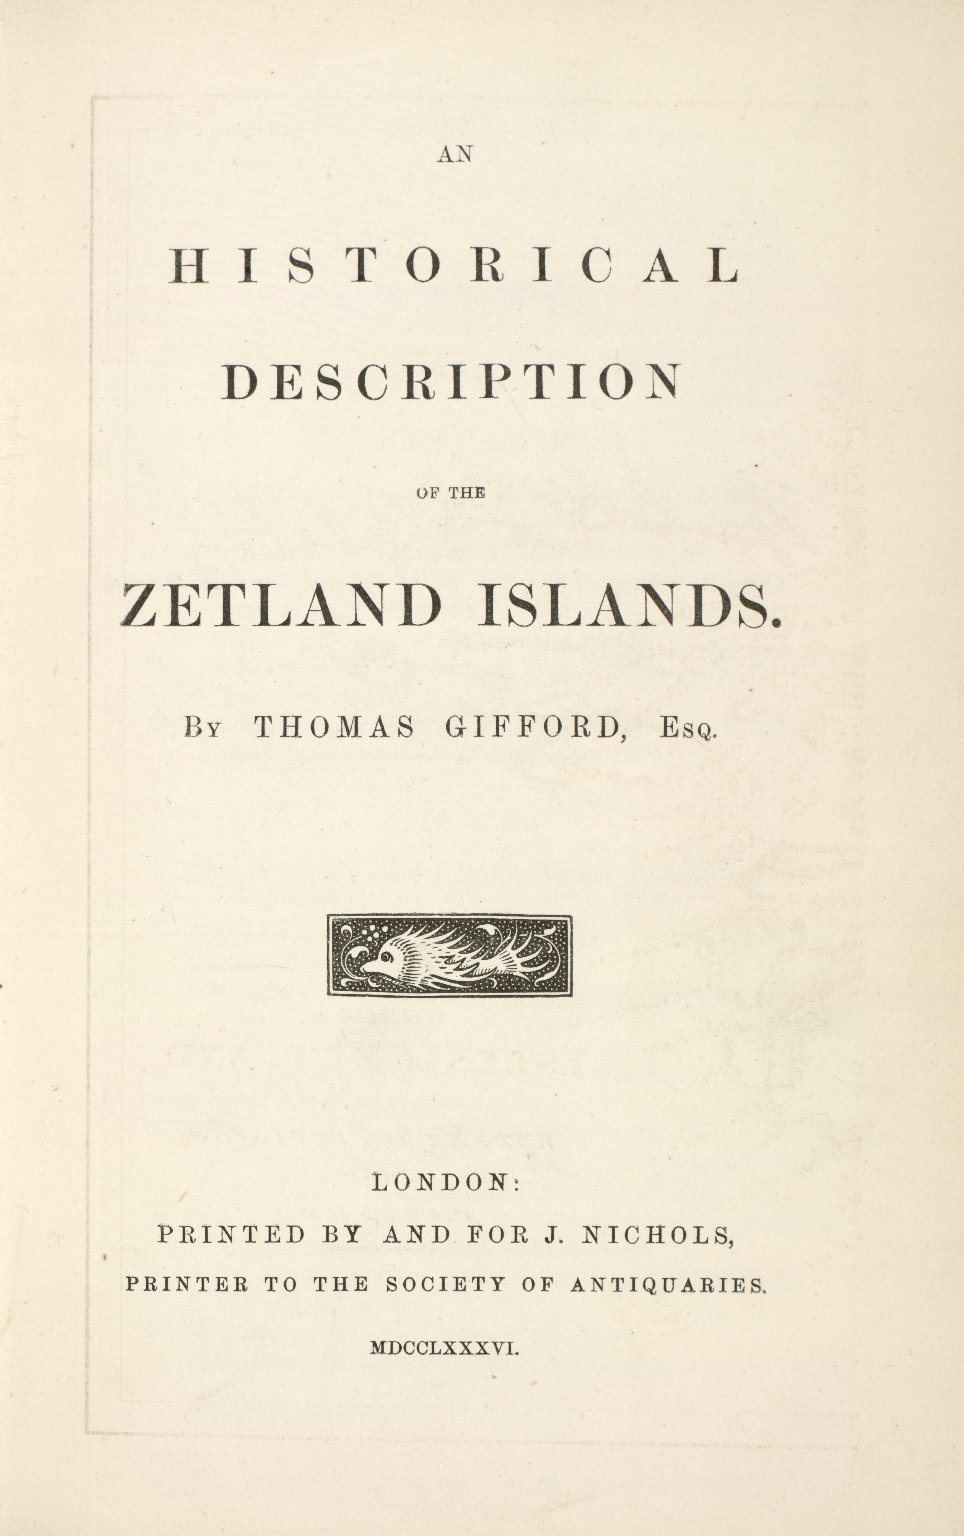 Historical Description of the Zetland Islands in the year 1733. [09 of 25]